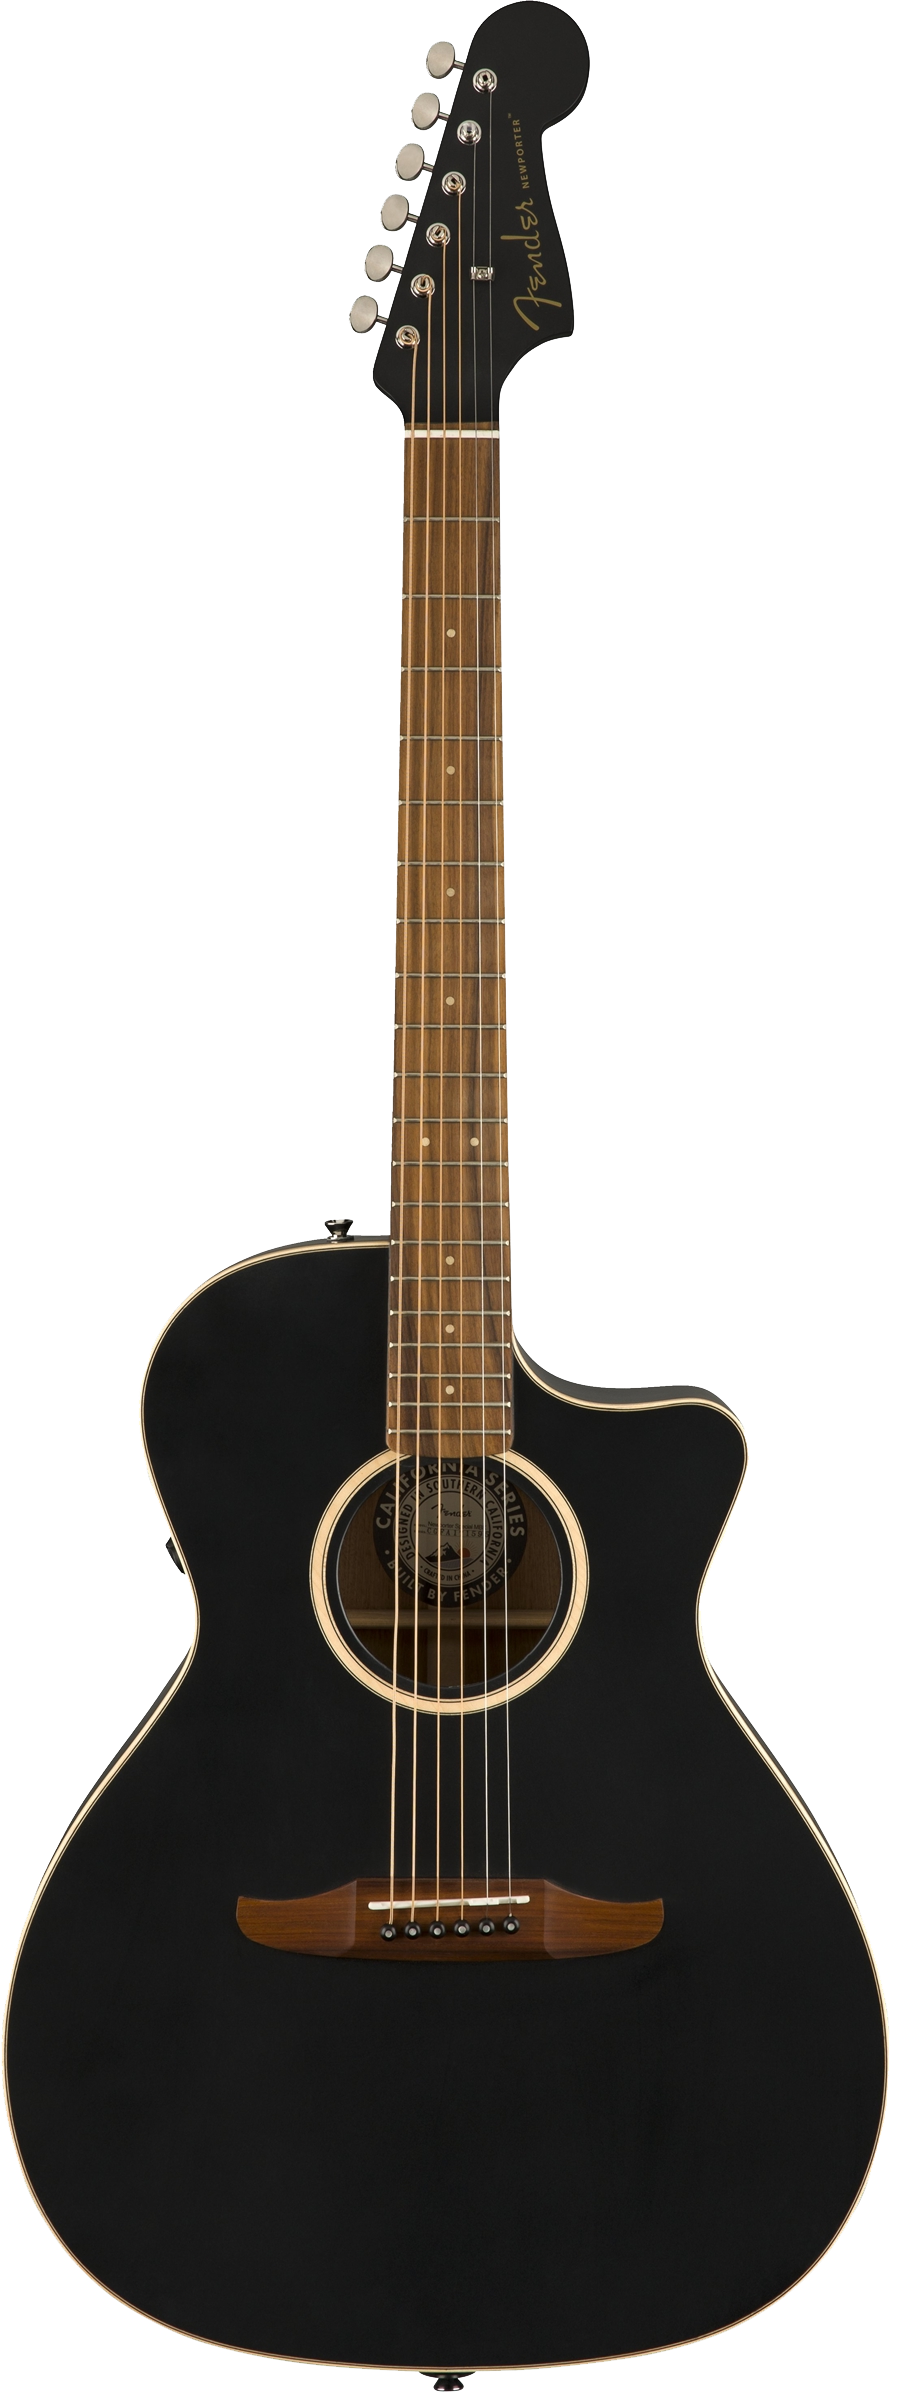 Fender Newporter Special Acoustic / Electric Guitar - Jetty Black